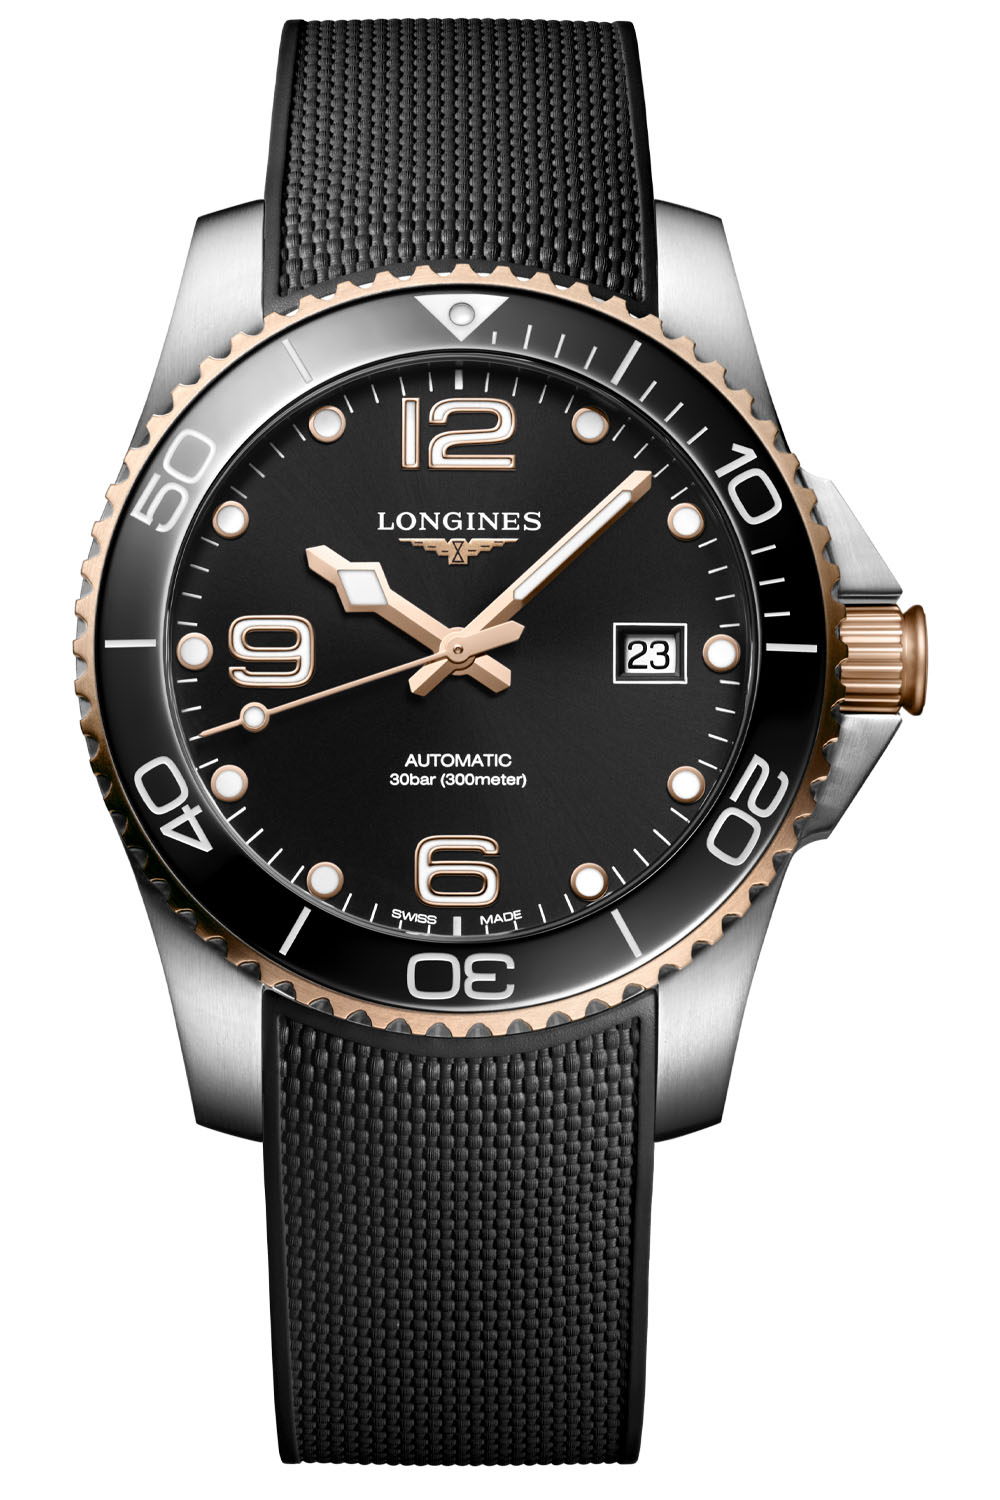 2021 Longines Hydroconquest 41mm Two-Tone Collection